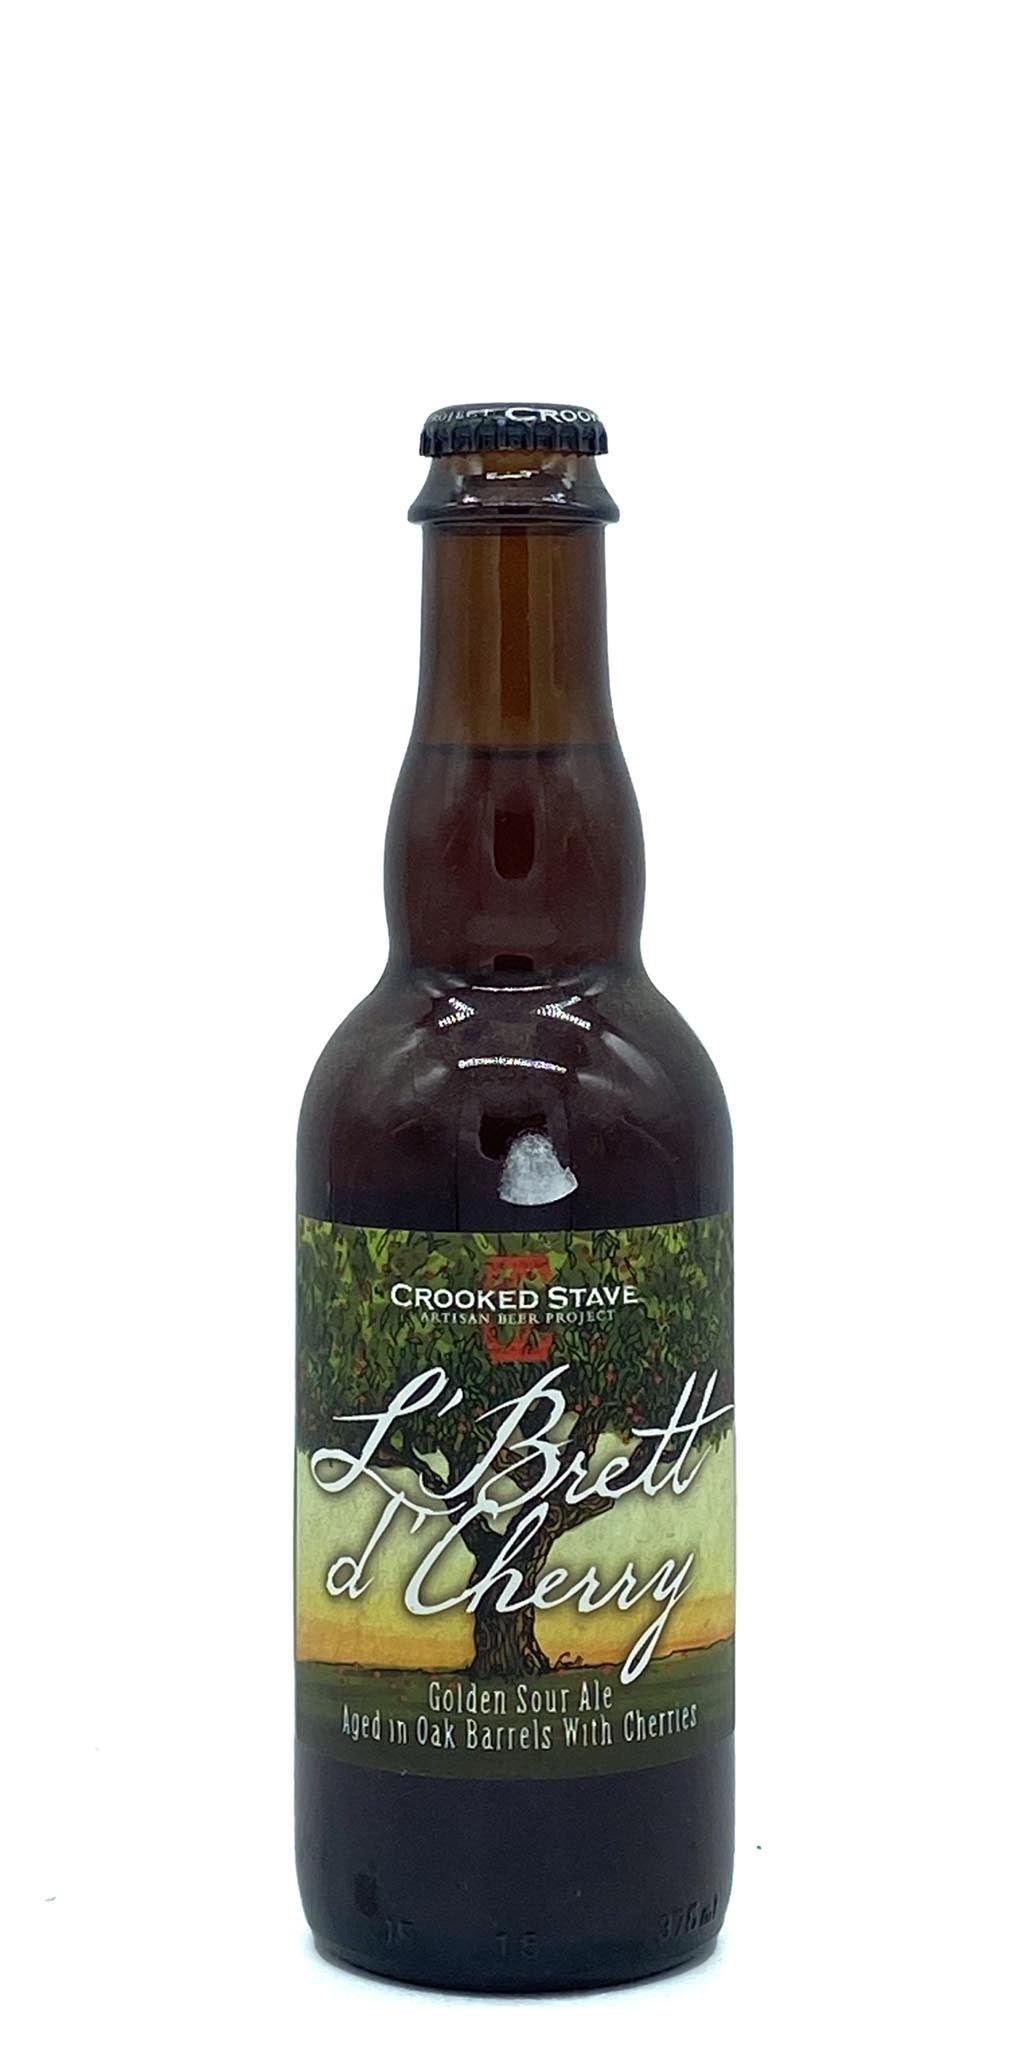 Crooked Stave - L'Brett Cherry 2015